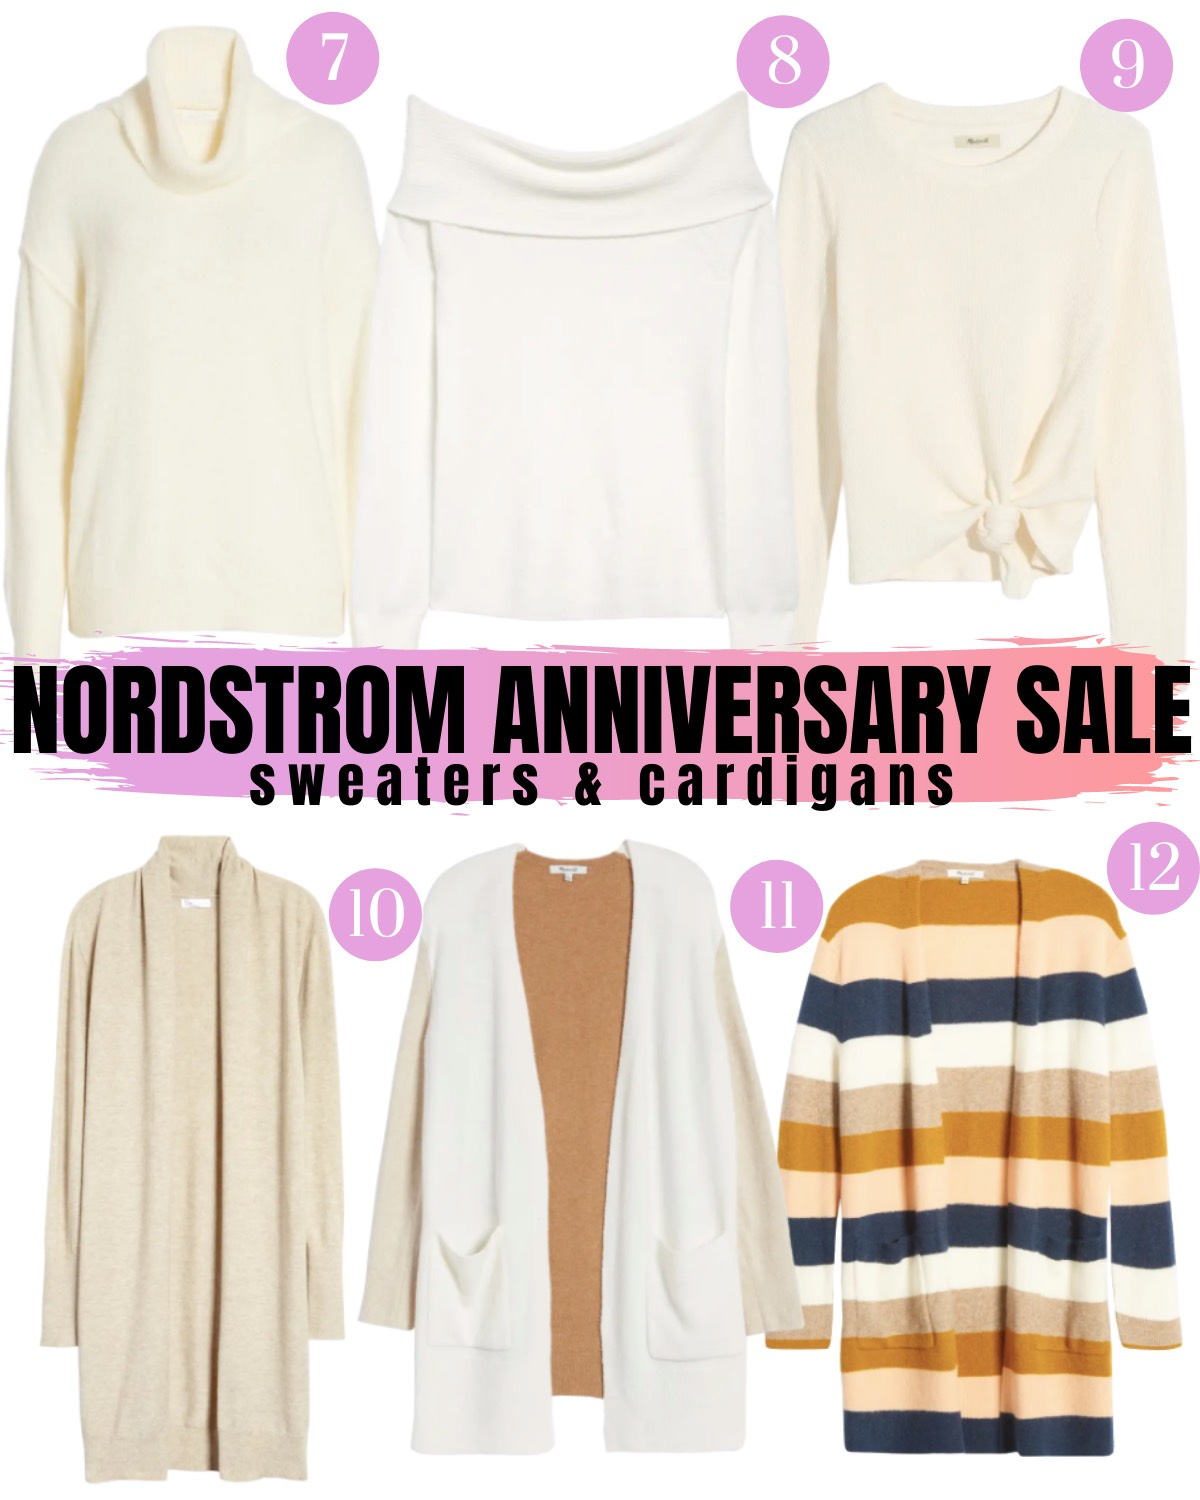 Nordstrom Anniversary Sale 2020 sweaters and cardigans